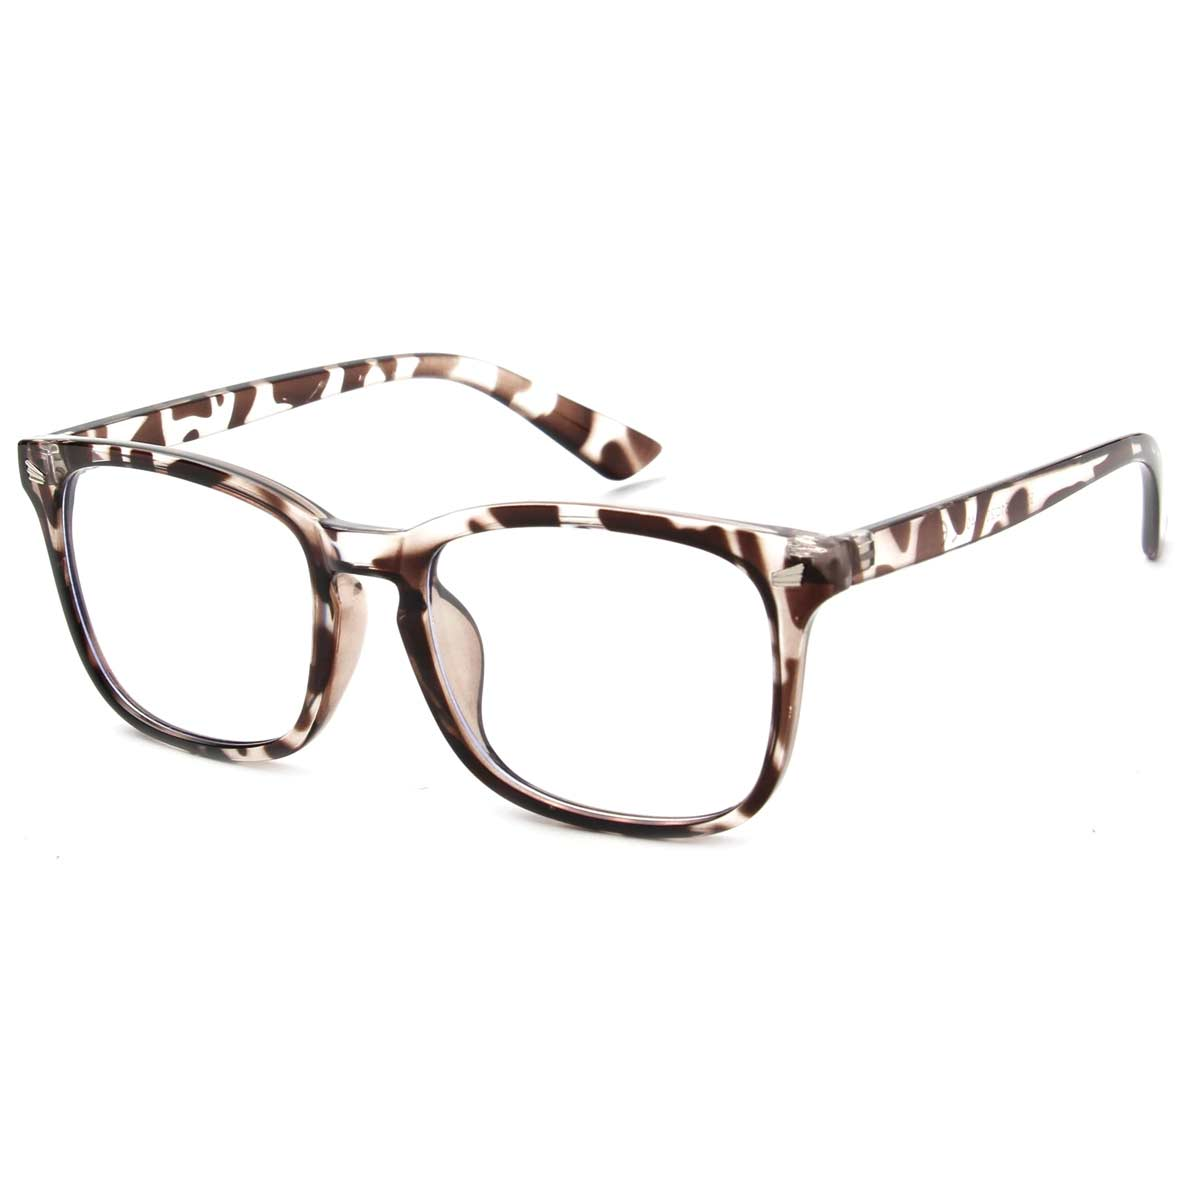 Tortoise Shell Frame Blue Light Blocking Glasses